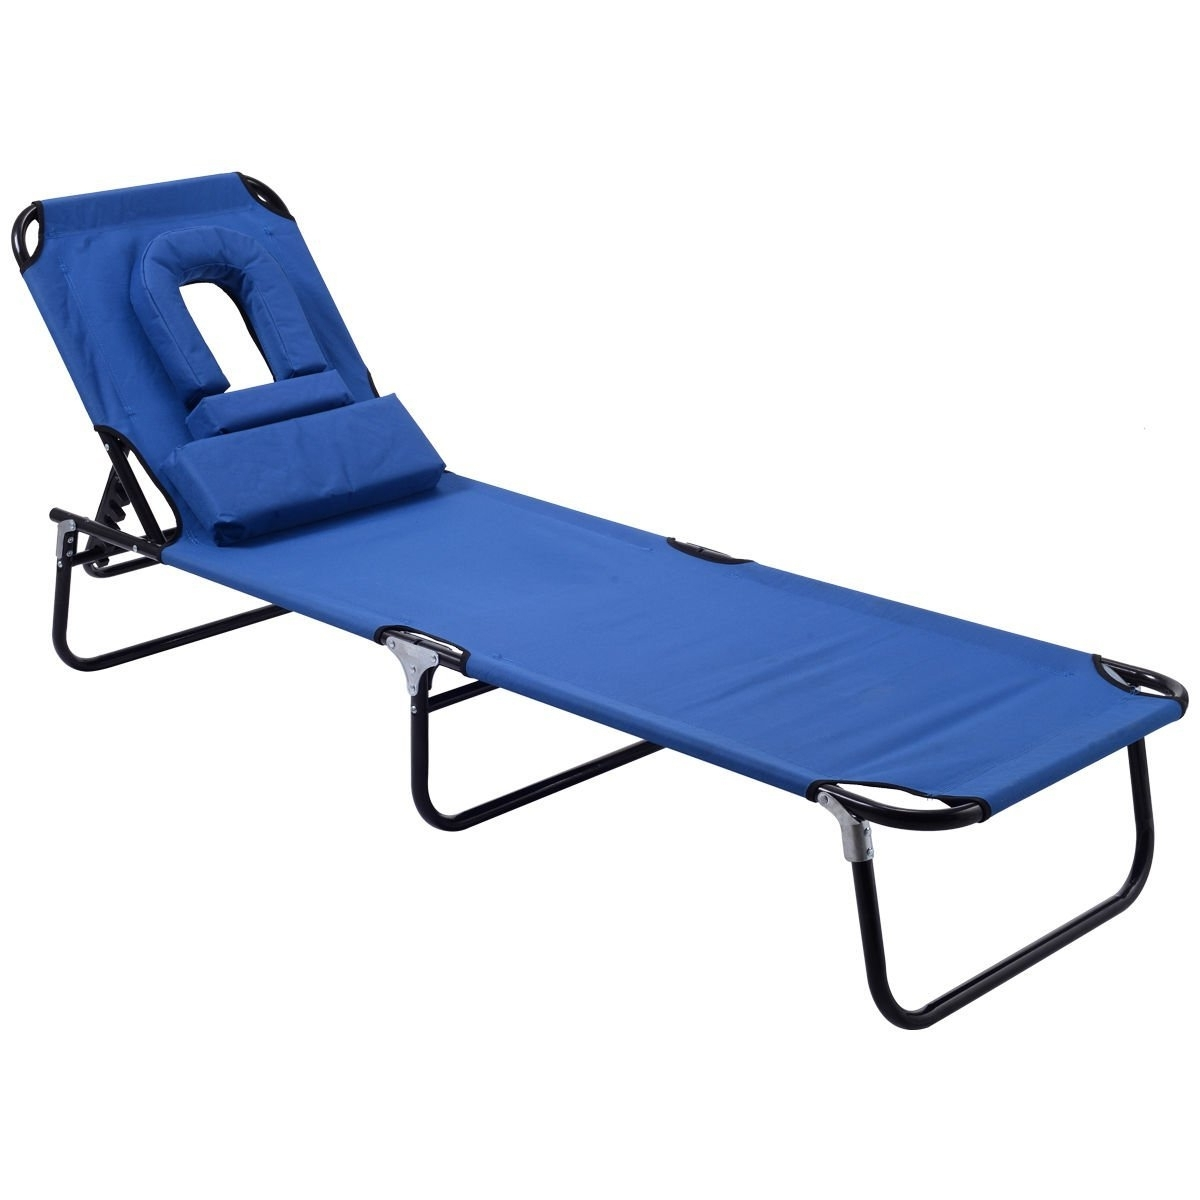 Outdoor : Lowes Outdoor Double Chaise Lounge Costco Patio Throughout Recent Folding Chaise Lounge Outdoor Chairs (View 8 of 15)